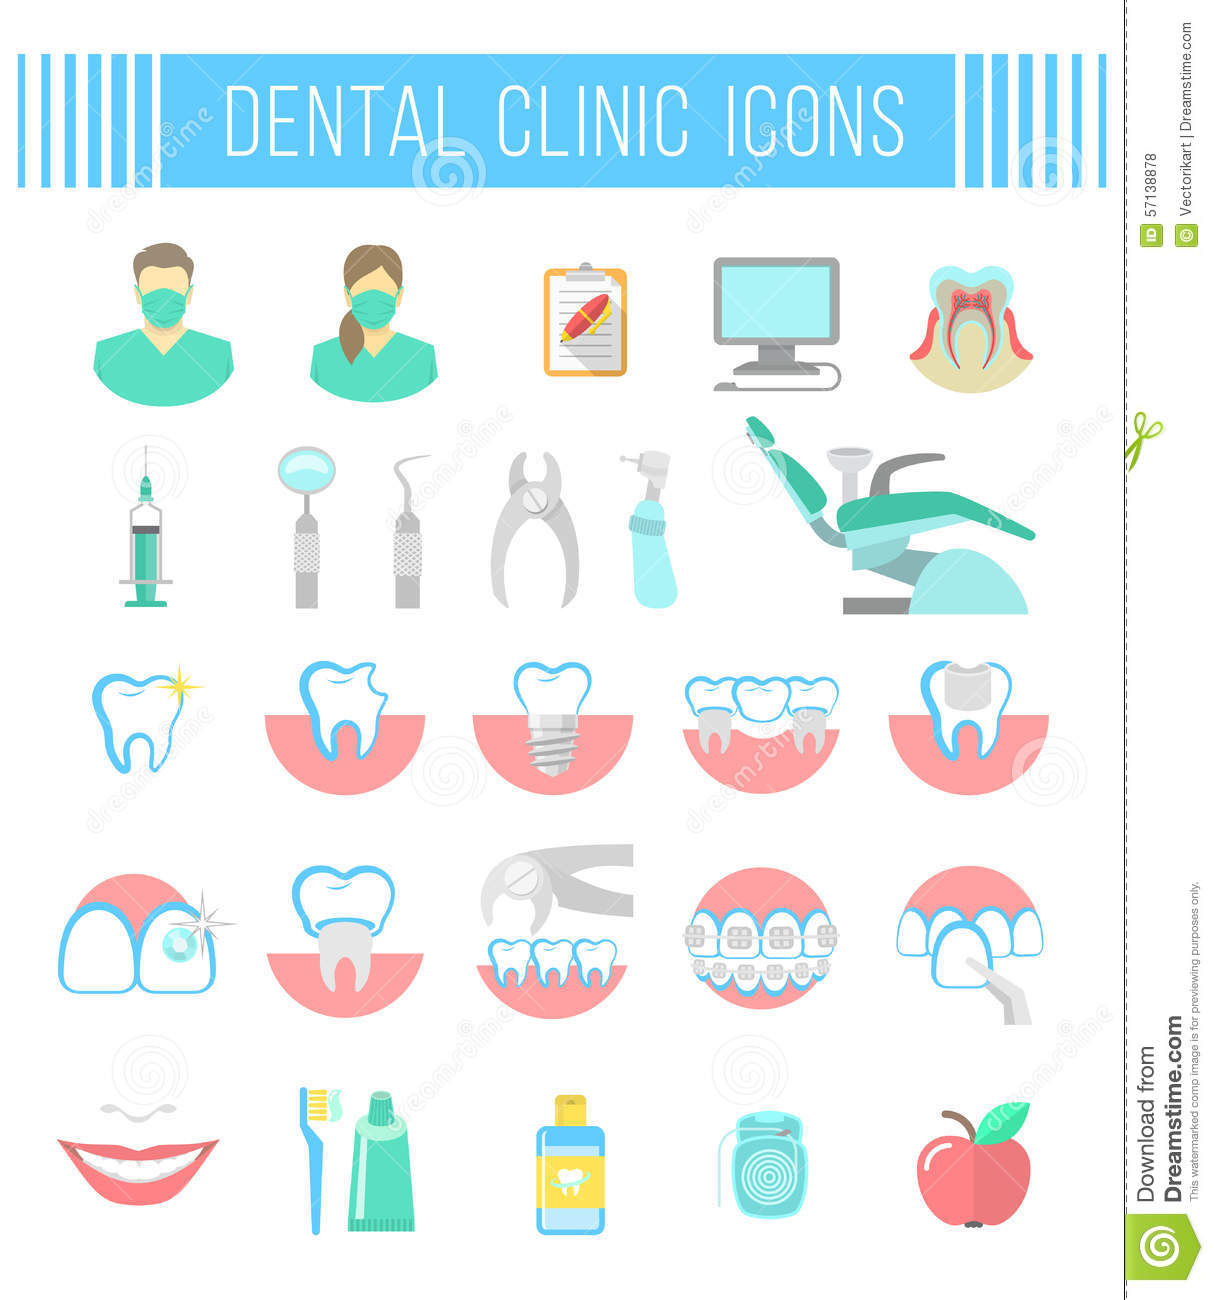 Dental Clinic Services Flat Icons On White Illustration 57138878